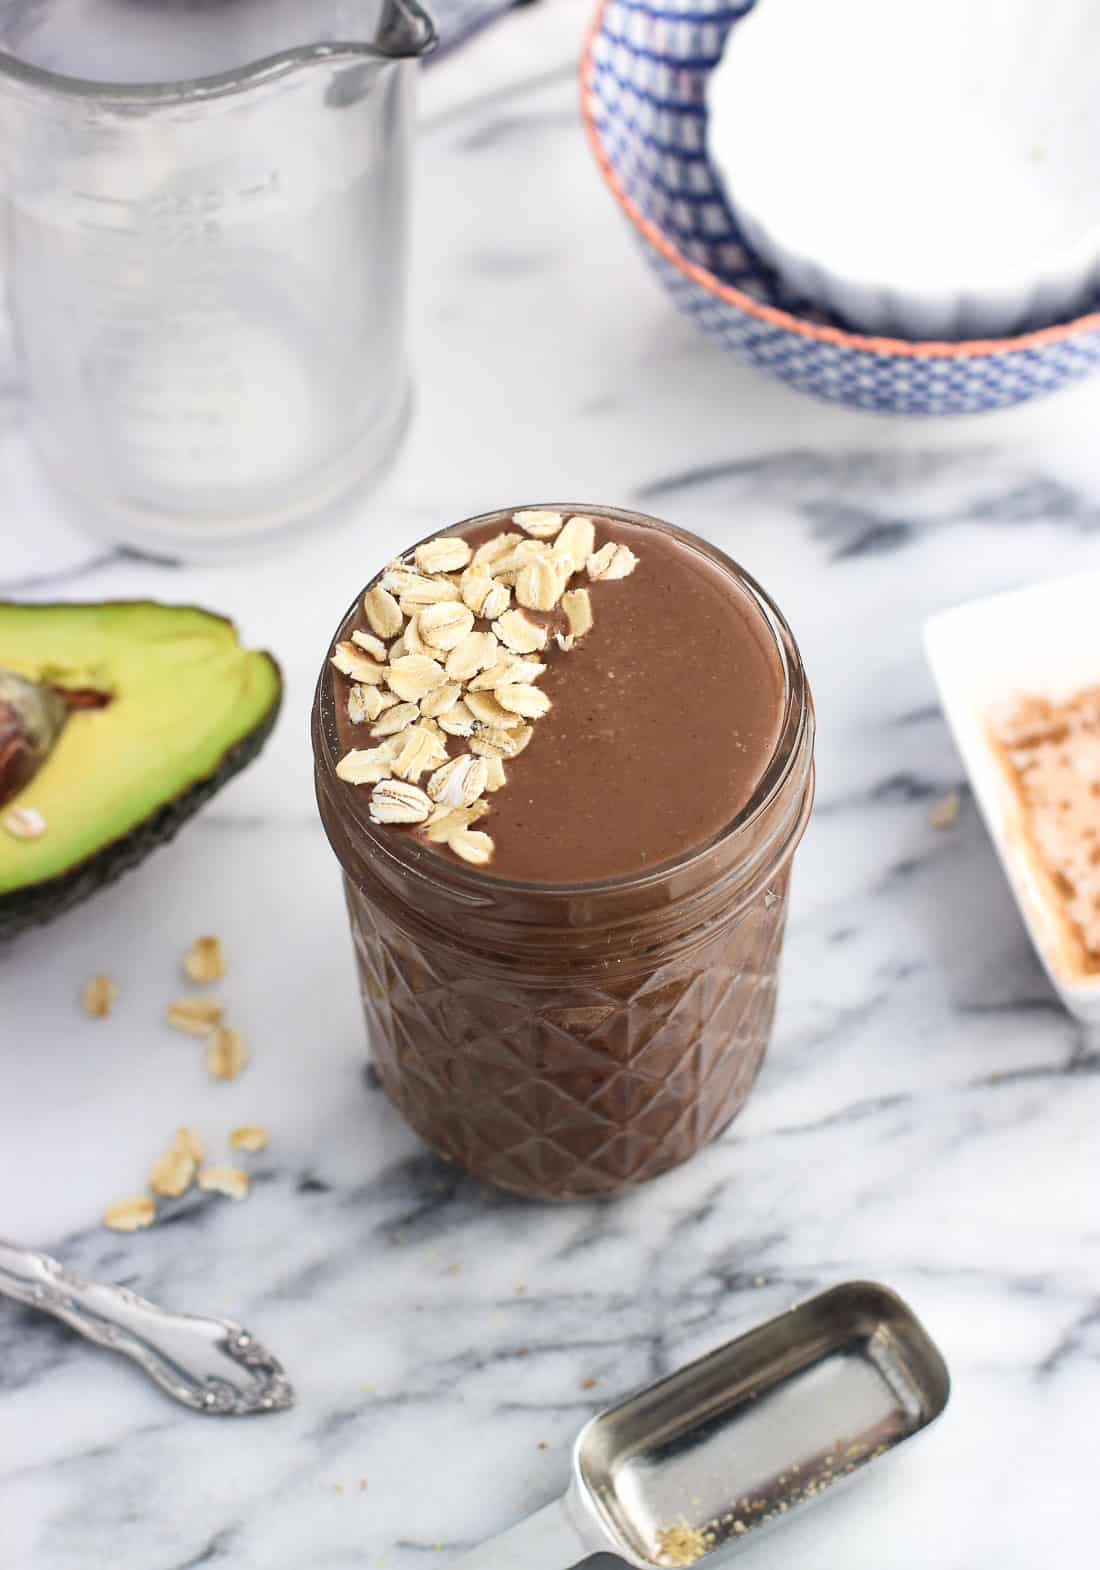 This chocolate cherry smoothie is extra filling thanks to the addition of oats, flaxseed, and avocado. Everything blends right up to form this dairy-free smoothie with great staying power. Great for breakfasts, snacks, or even as a healthy chocolate-flavored dessert.